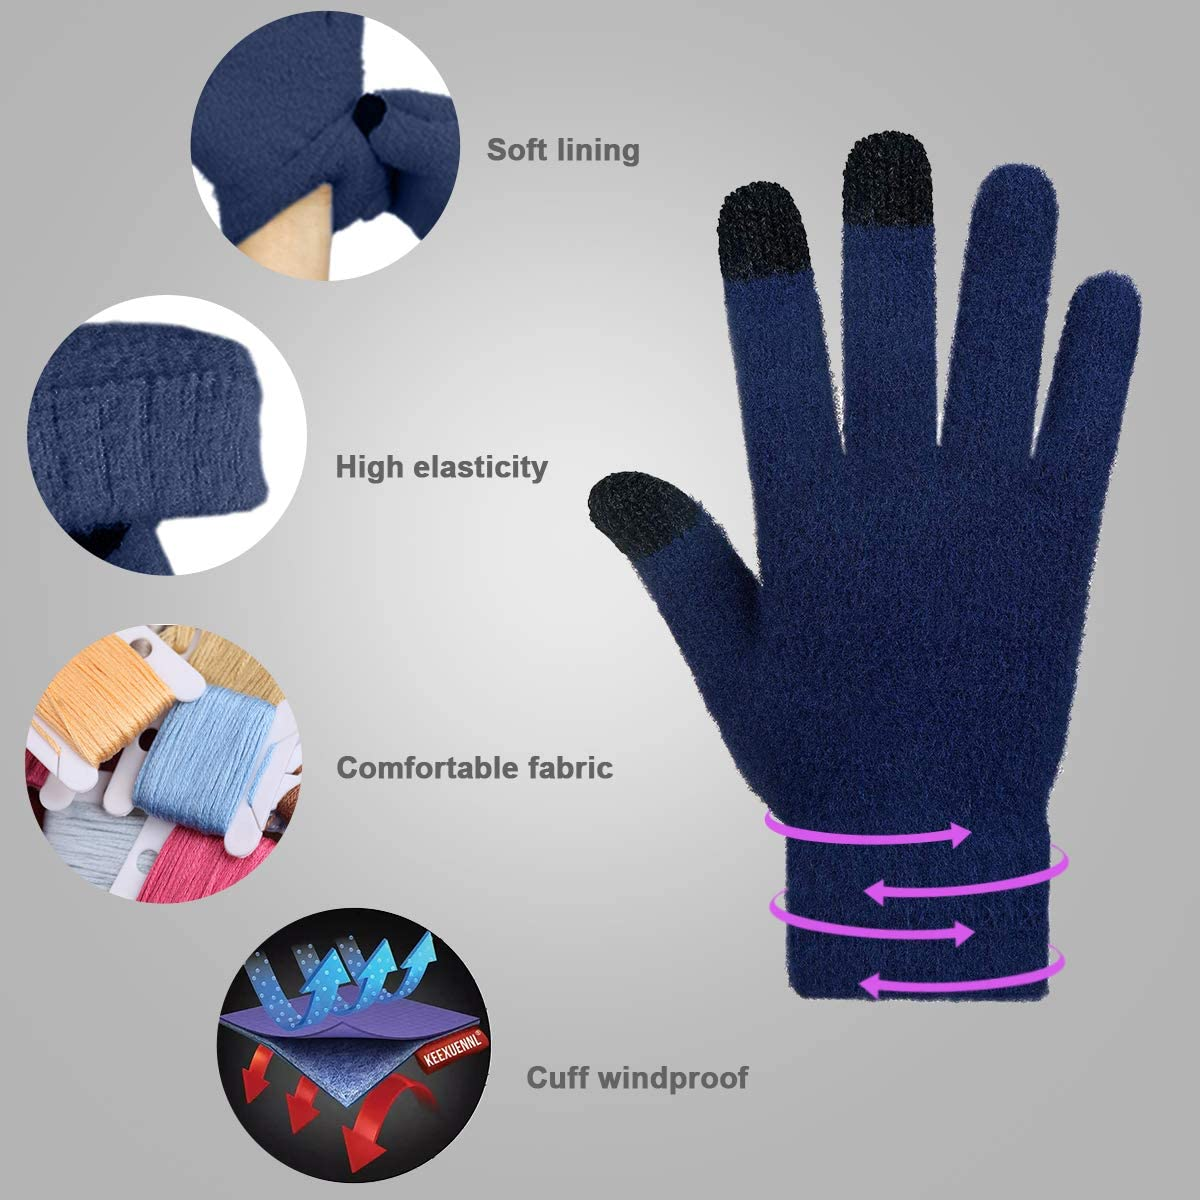 Achiou Winter Touchscreen Gloves Knit Warm Thick Thermal Soft Comfortable Wool Lining Elastic Cuff Texting for Women Men